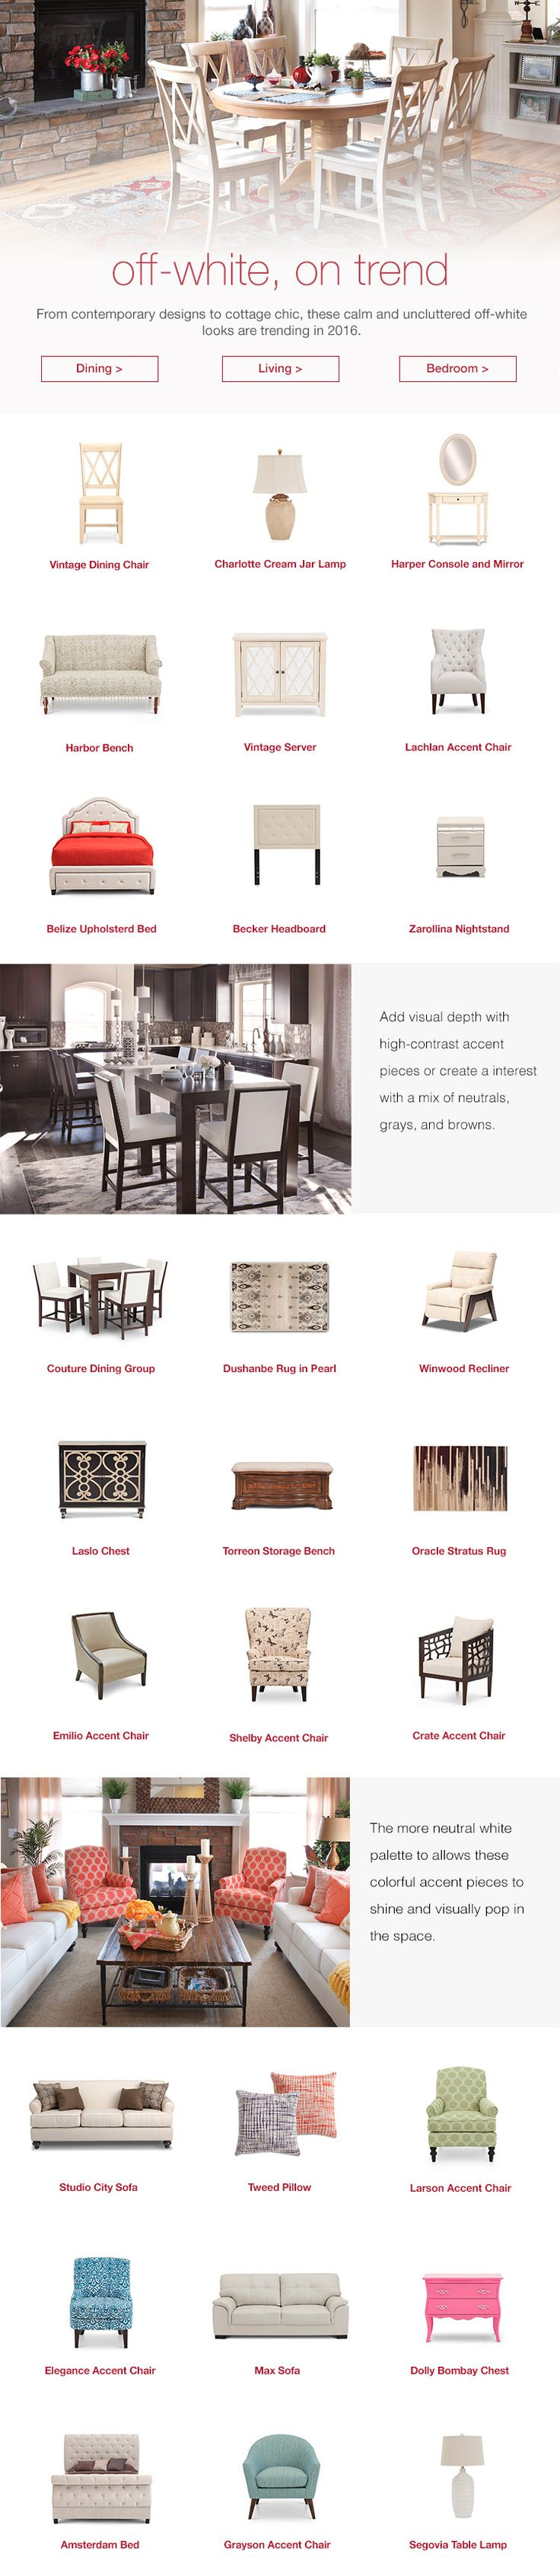 Off White Is On Trend For 2016 | Www.FurnitureRow.com